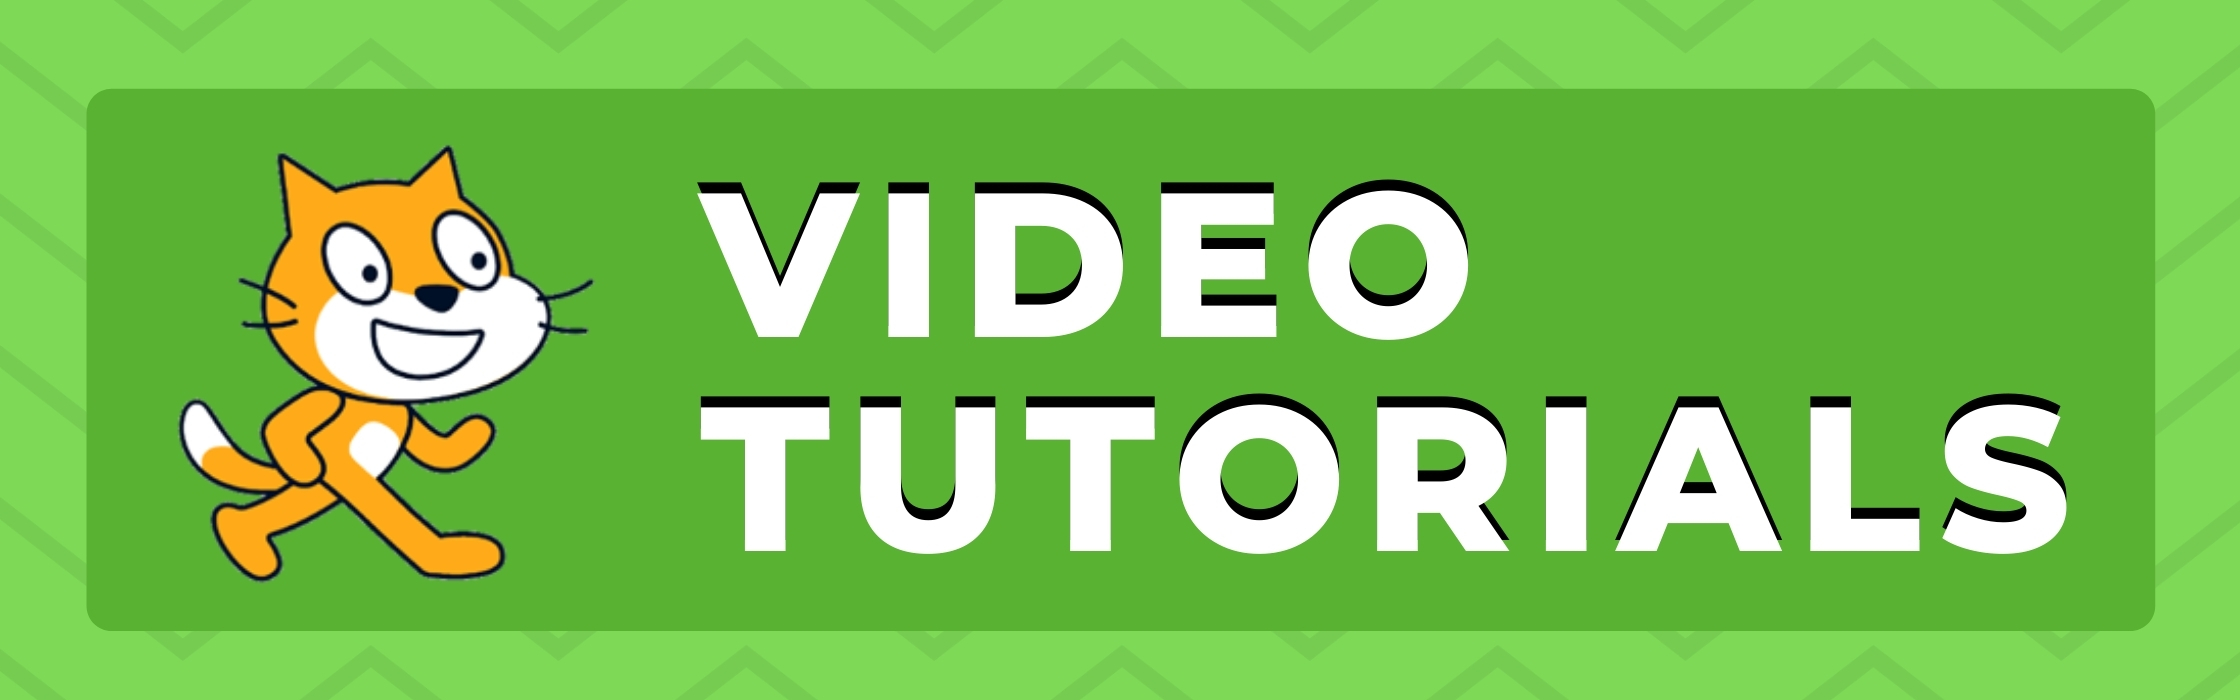 Scratch Video Tutorials